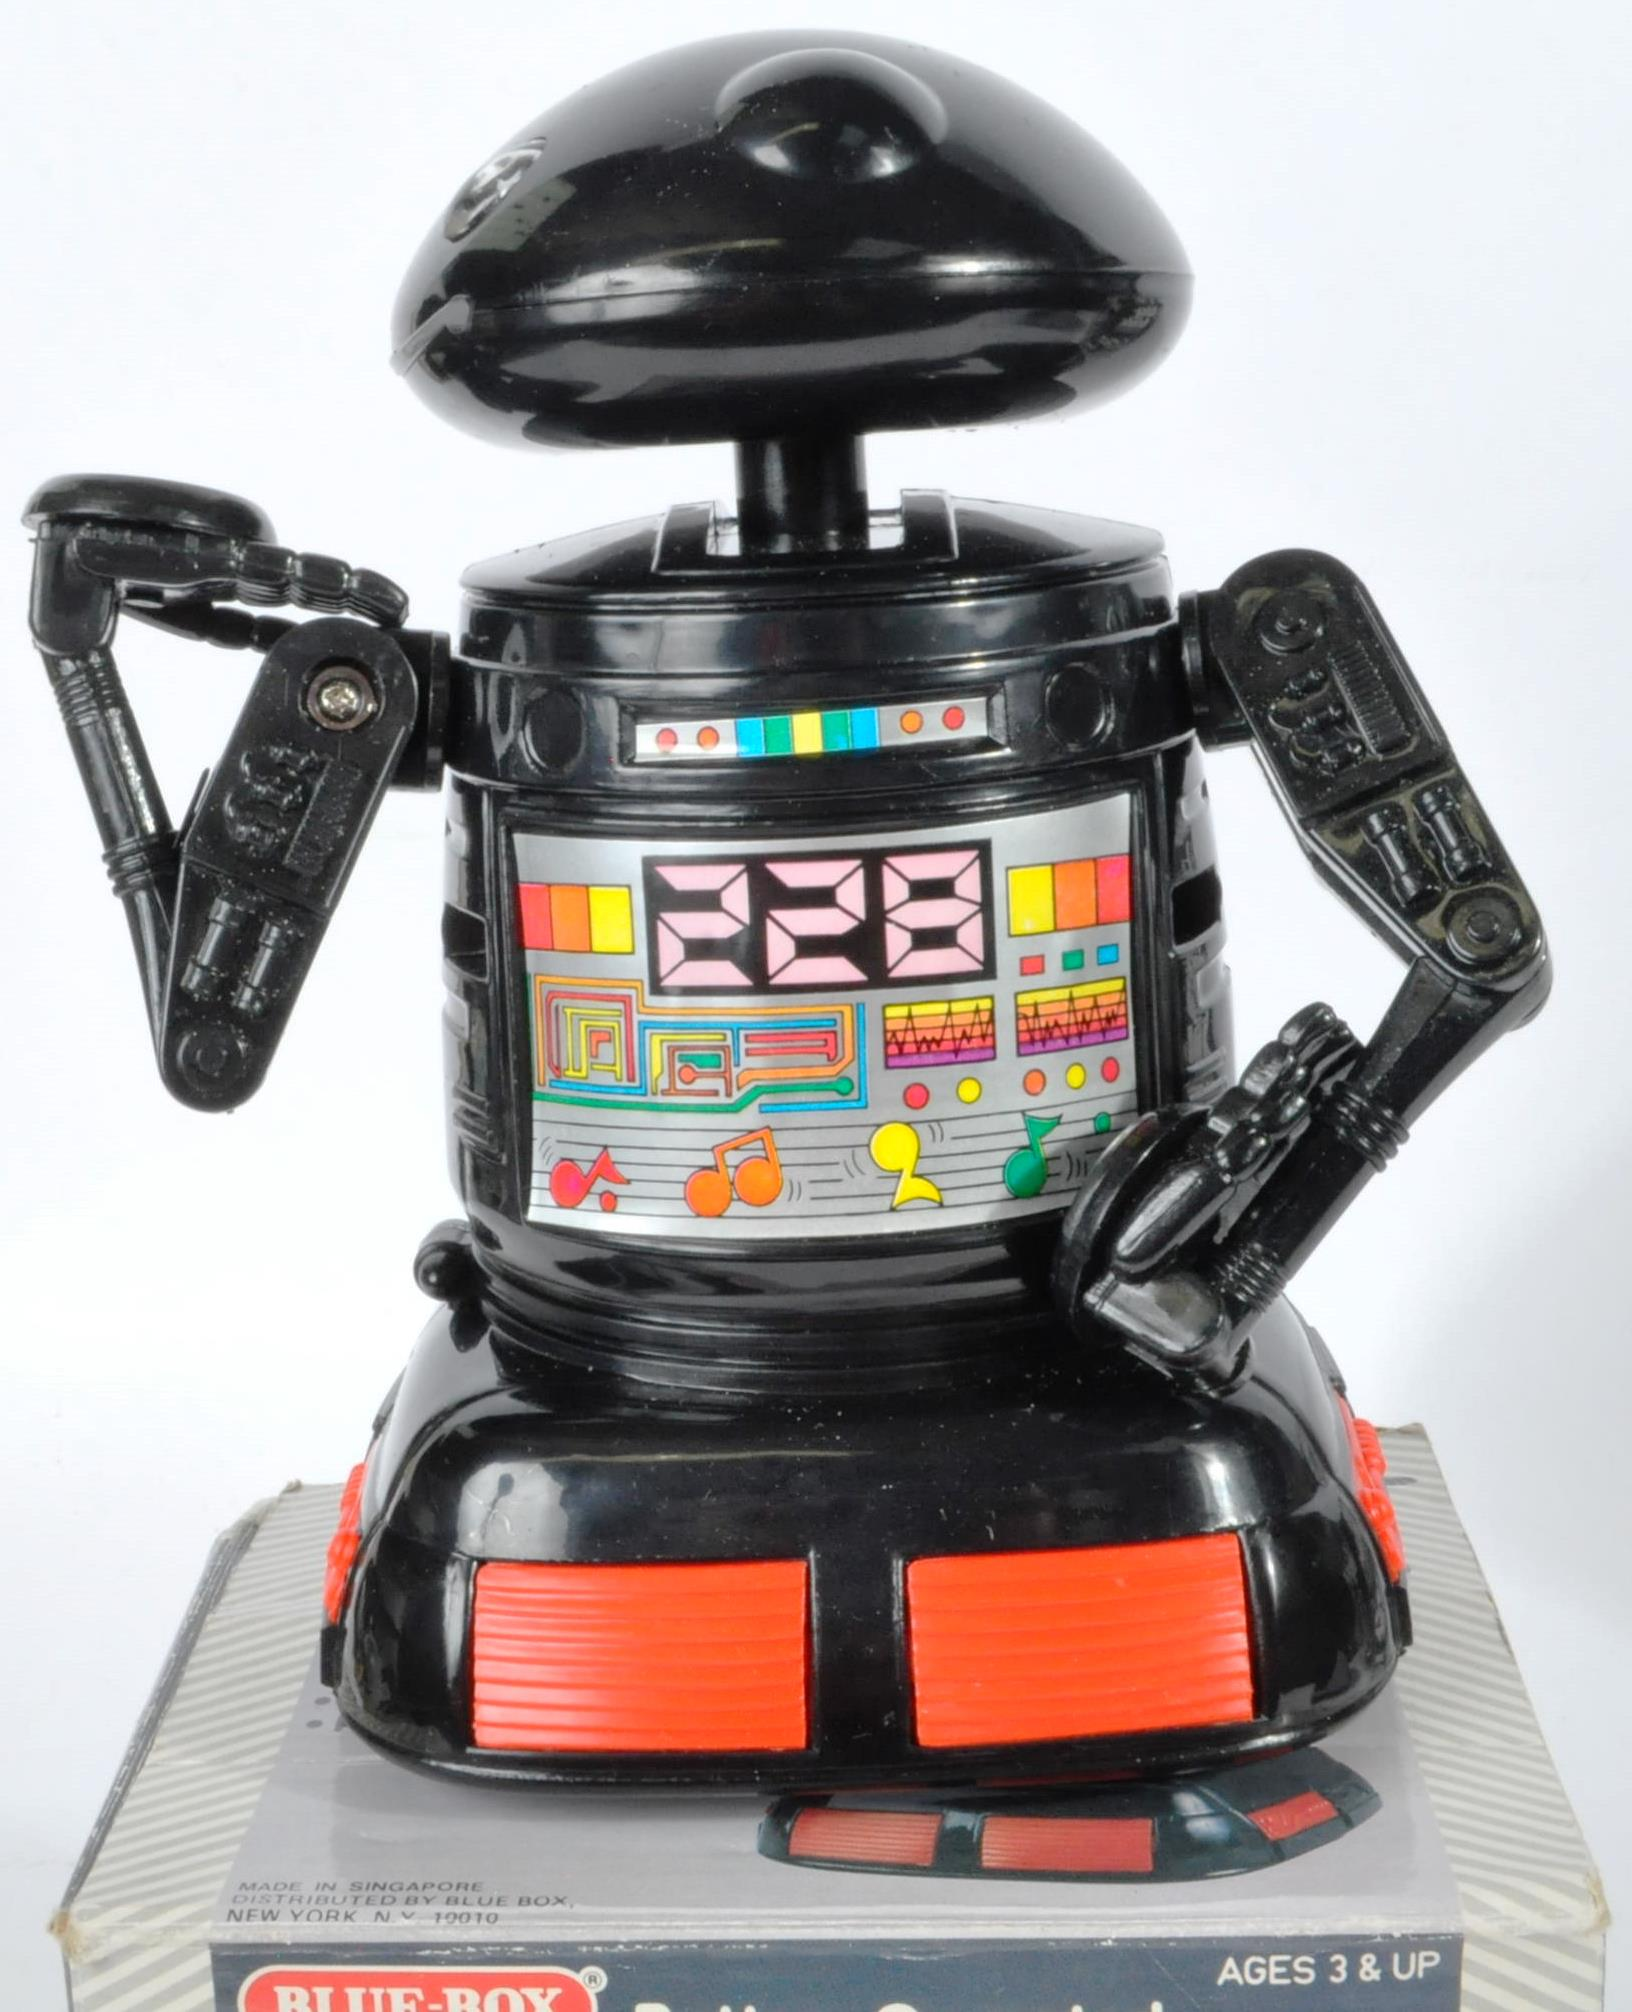 COLLECTION OF ASSORTED VINTAGE ELECTRONIC TOYS AND GAMES - Image 4 of 7